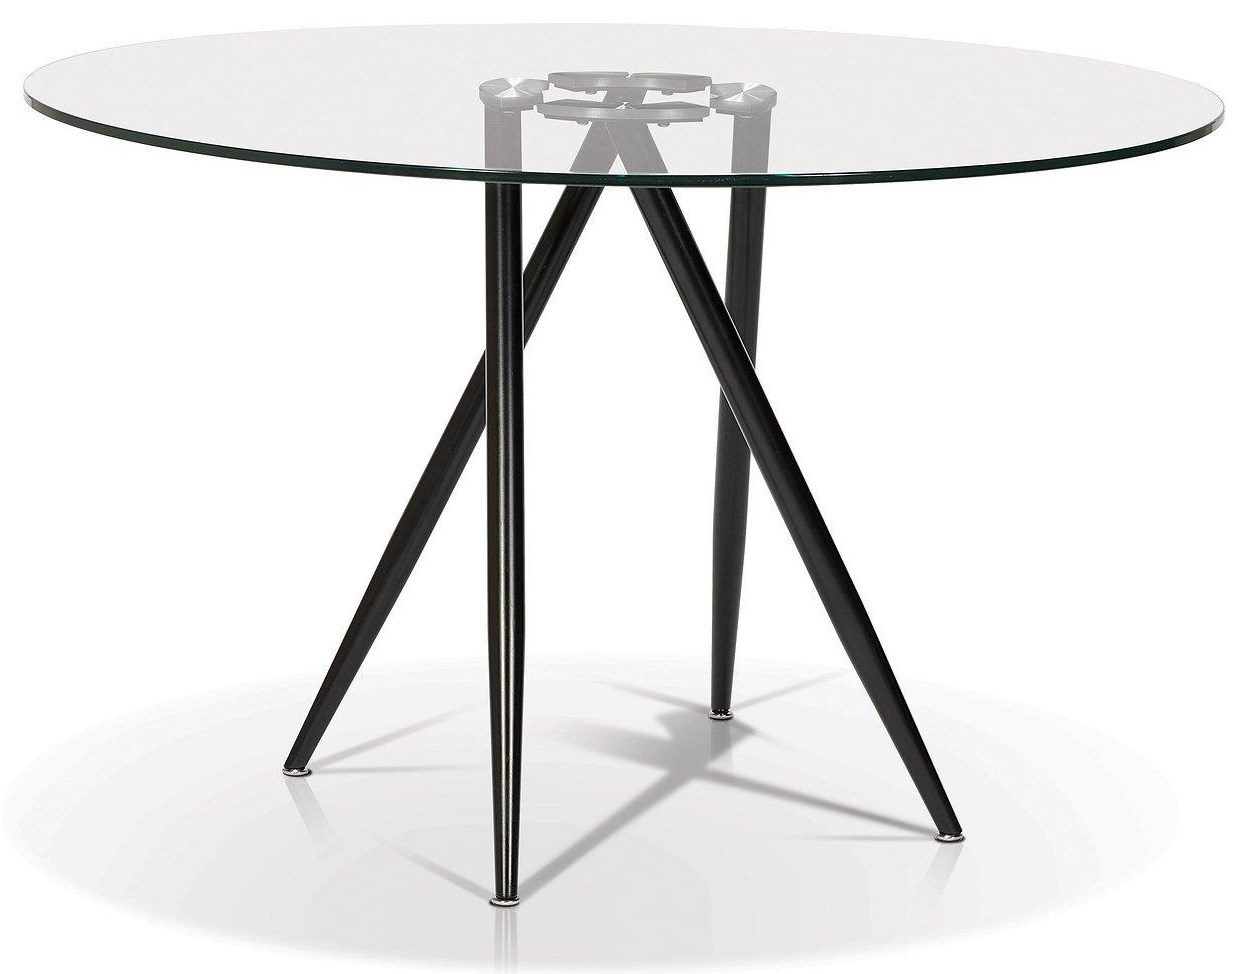 Korson Dining Room Syt1503 Round Glass Top Dining Table Upper Room Home Furnishings Dining Tables